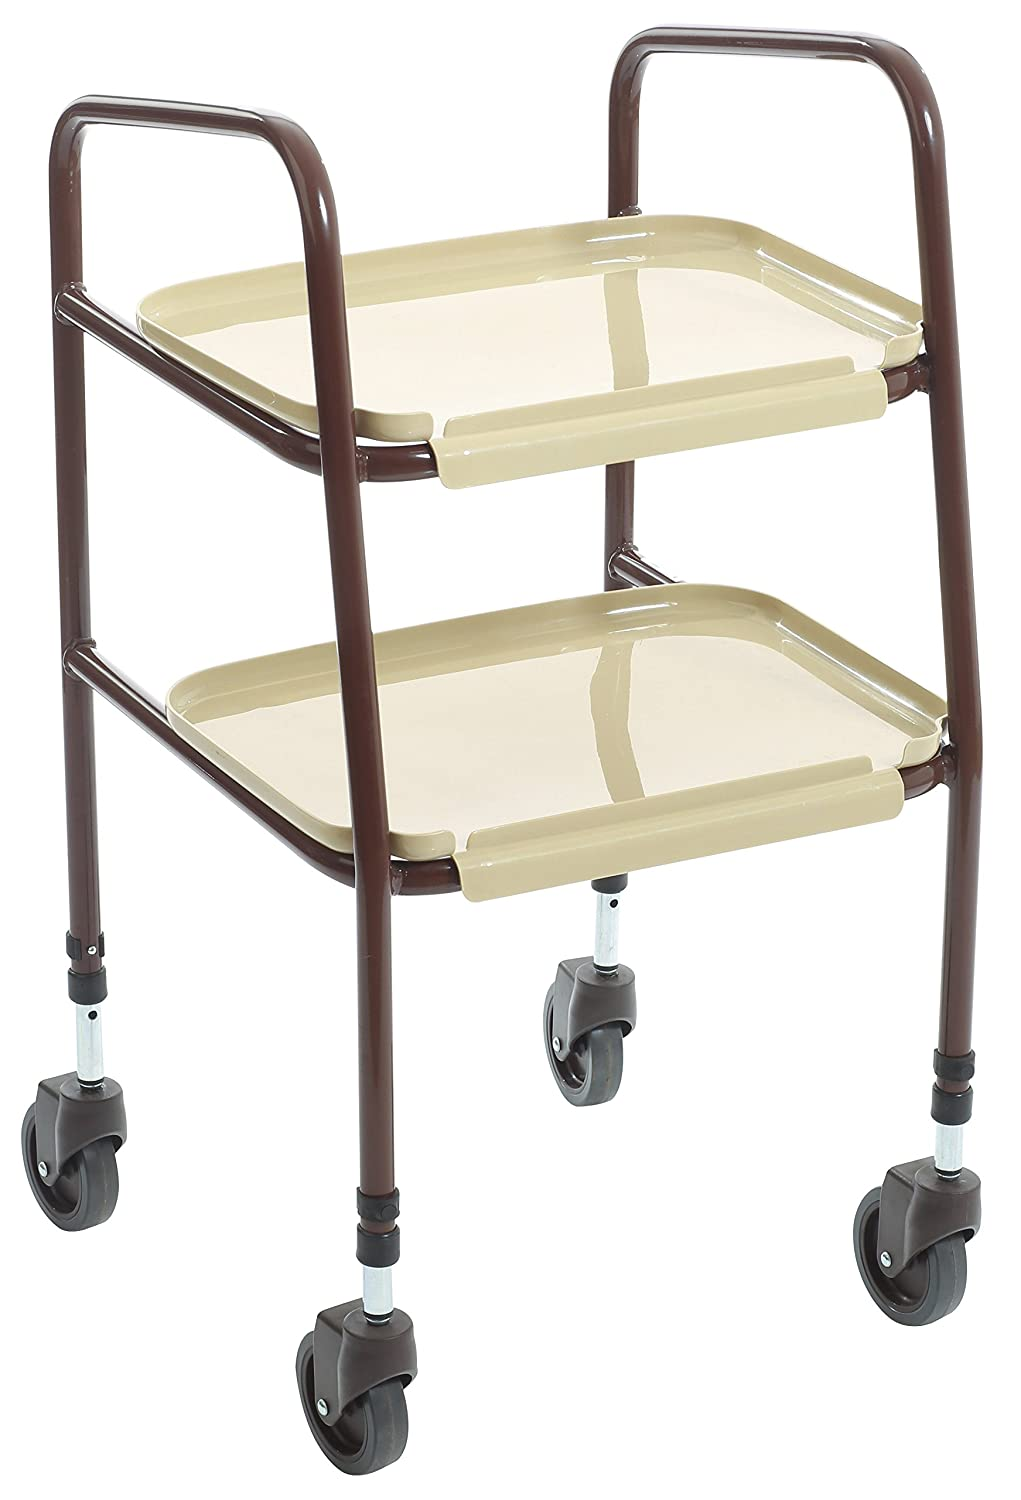 SimplyMed Wheeled Kitchen Trolley Adjustable Height Home Helper ...